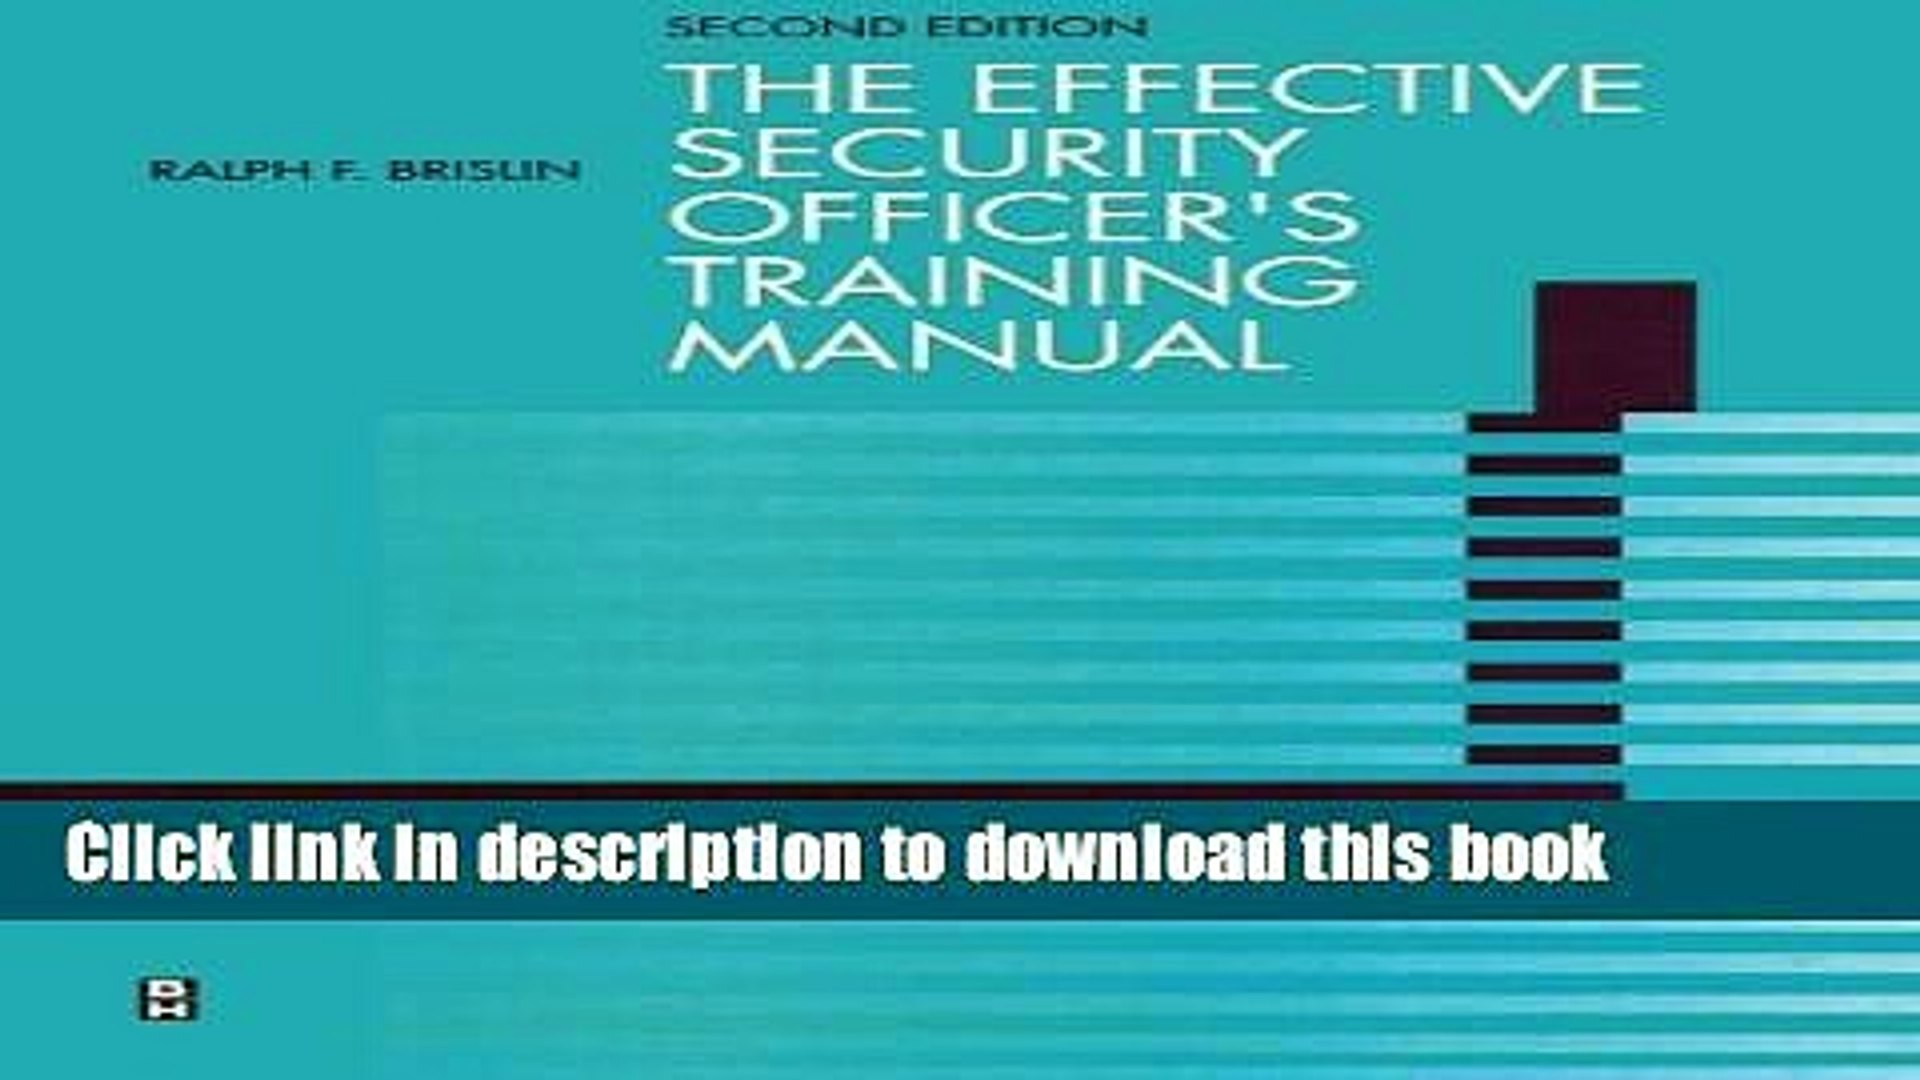 Effective Security Officers Training Manual